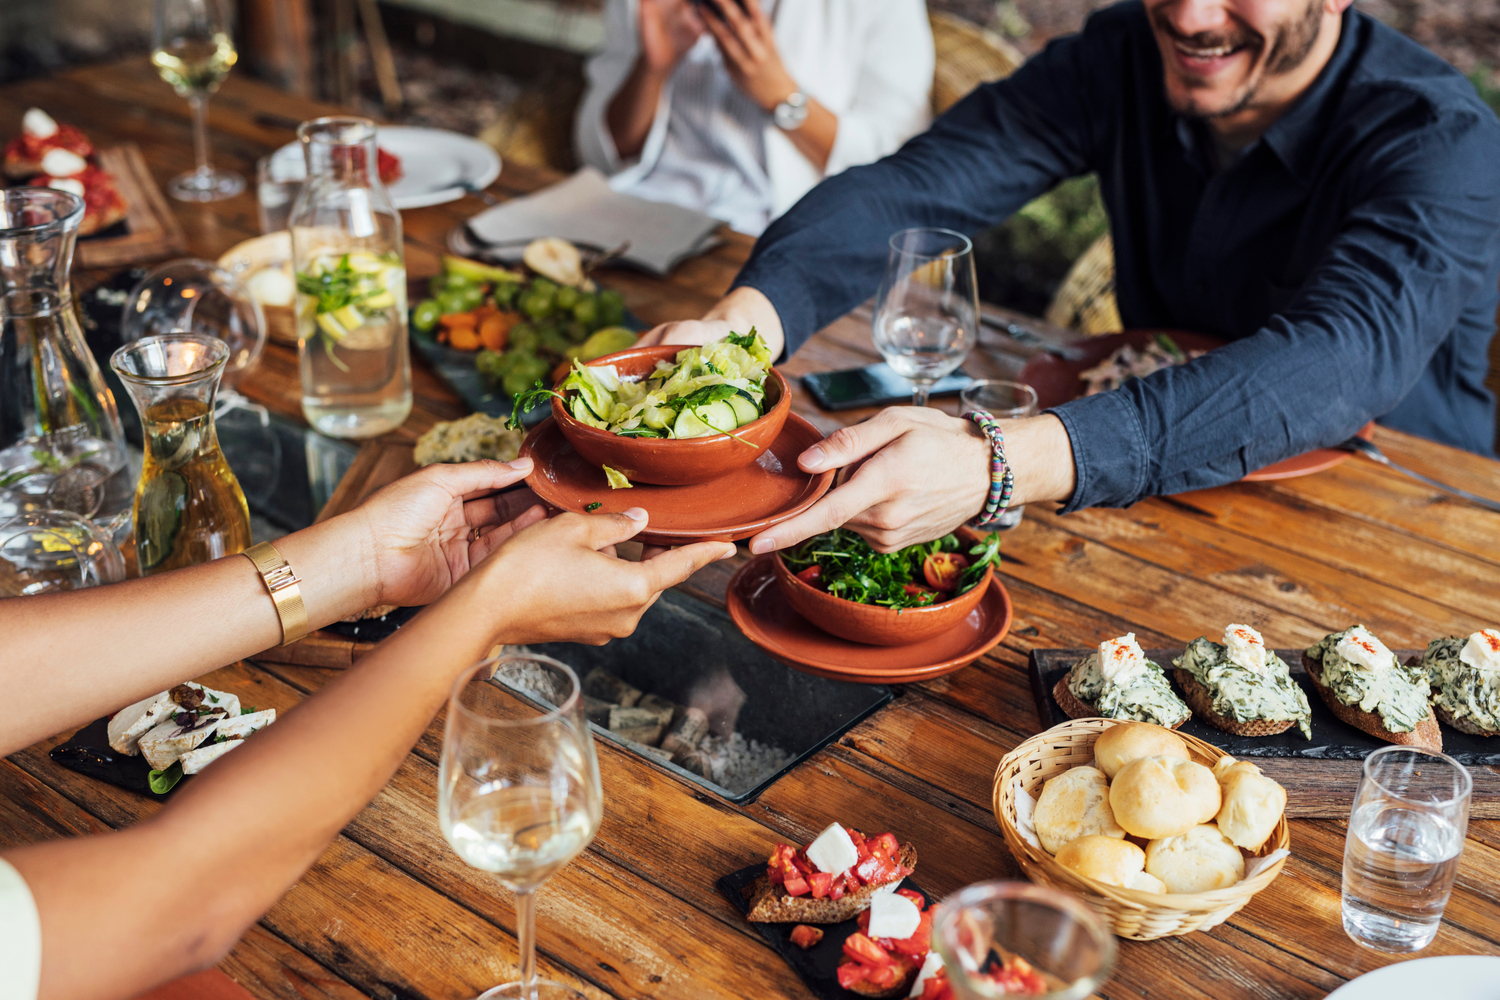 young man passing a bowl of green vegetables to a young woman over a table full of food at a vegetarian restaurant